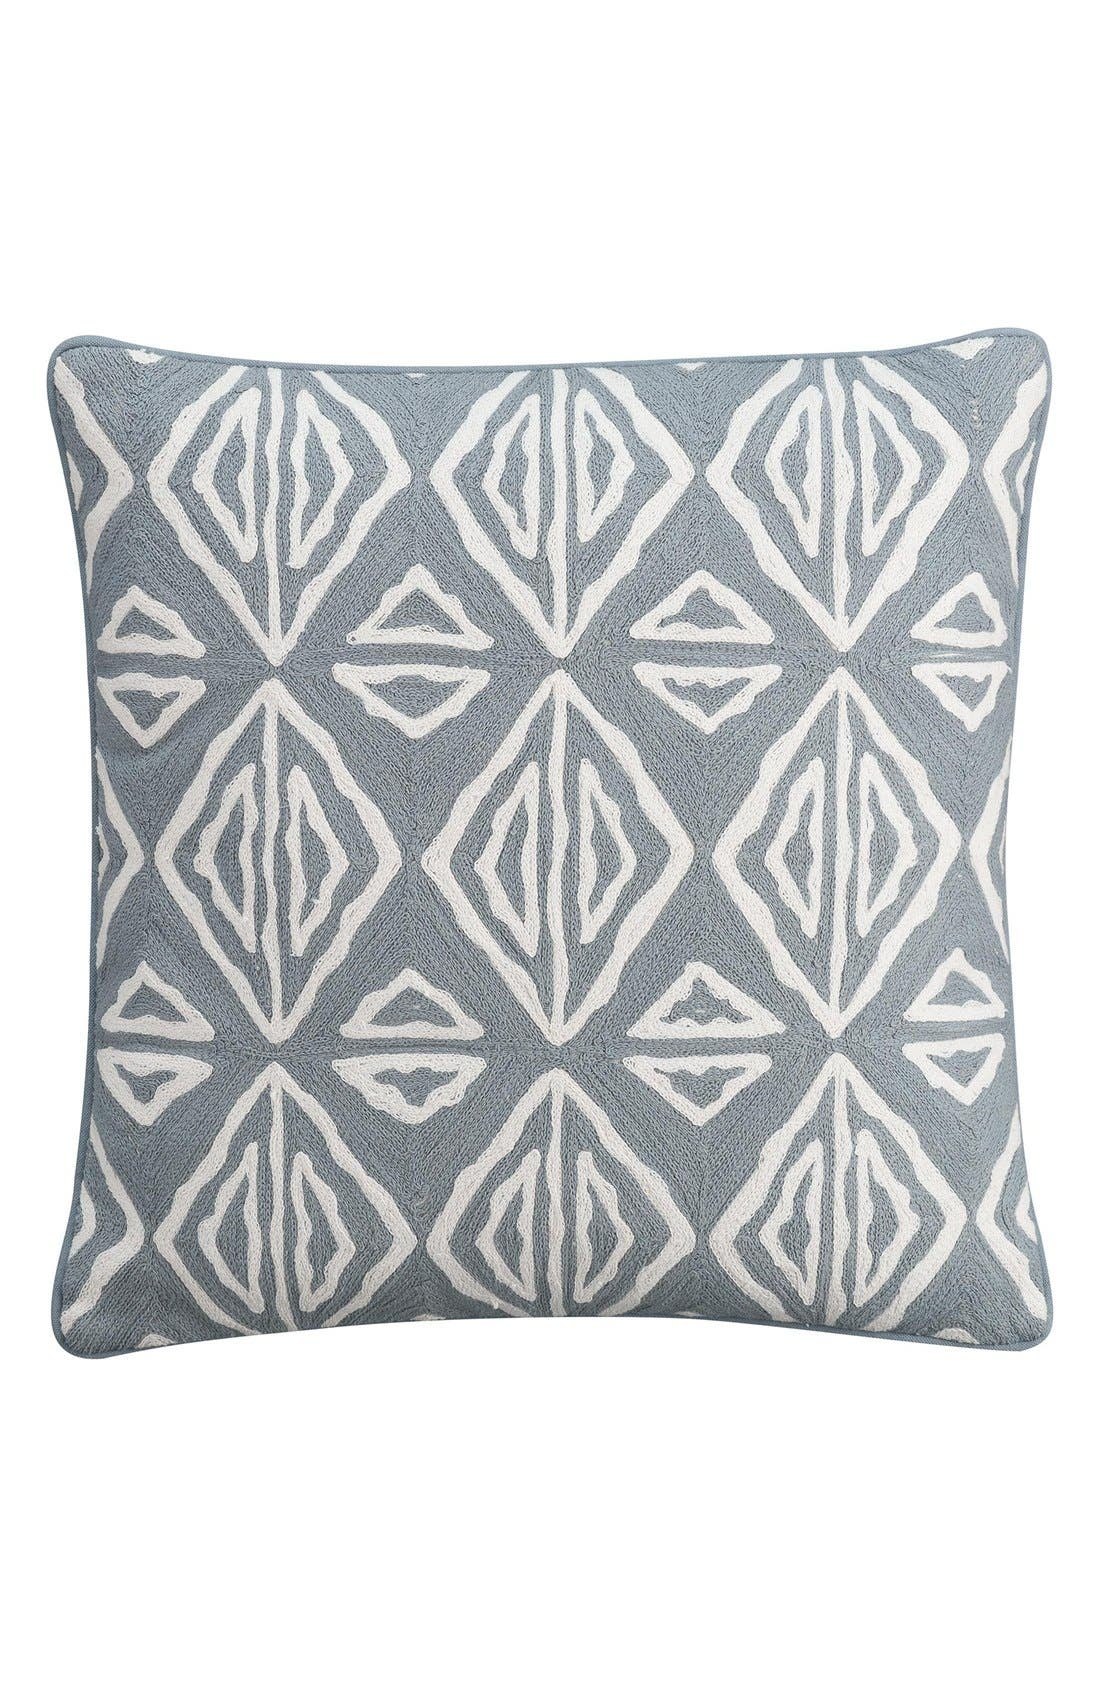 'Moroccan Geo' Crewel Embroidered Pillow,                             Main thumbnail 1, color,                             Grey